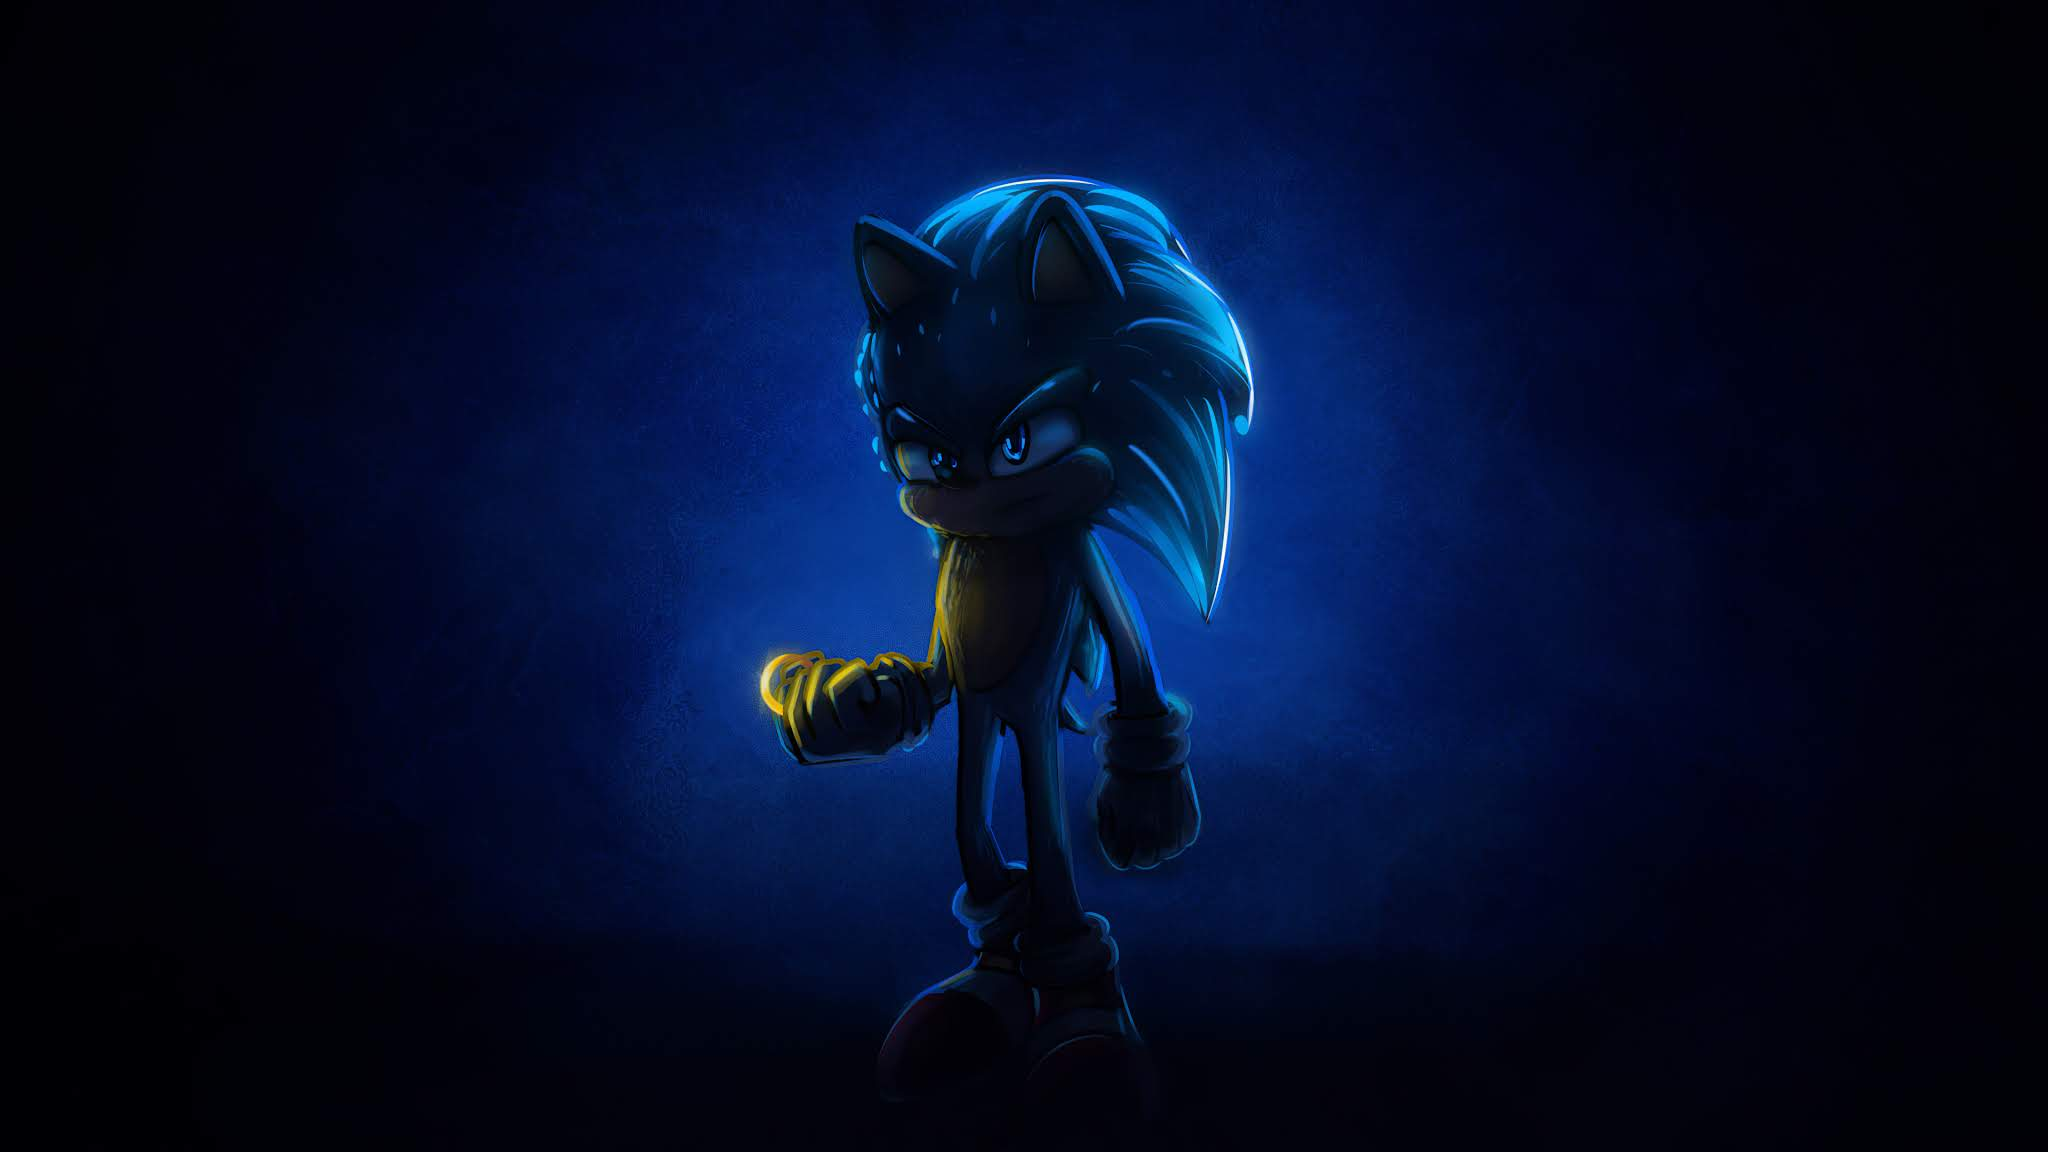 Sonic The Hedgehog 4k Hd